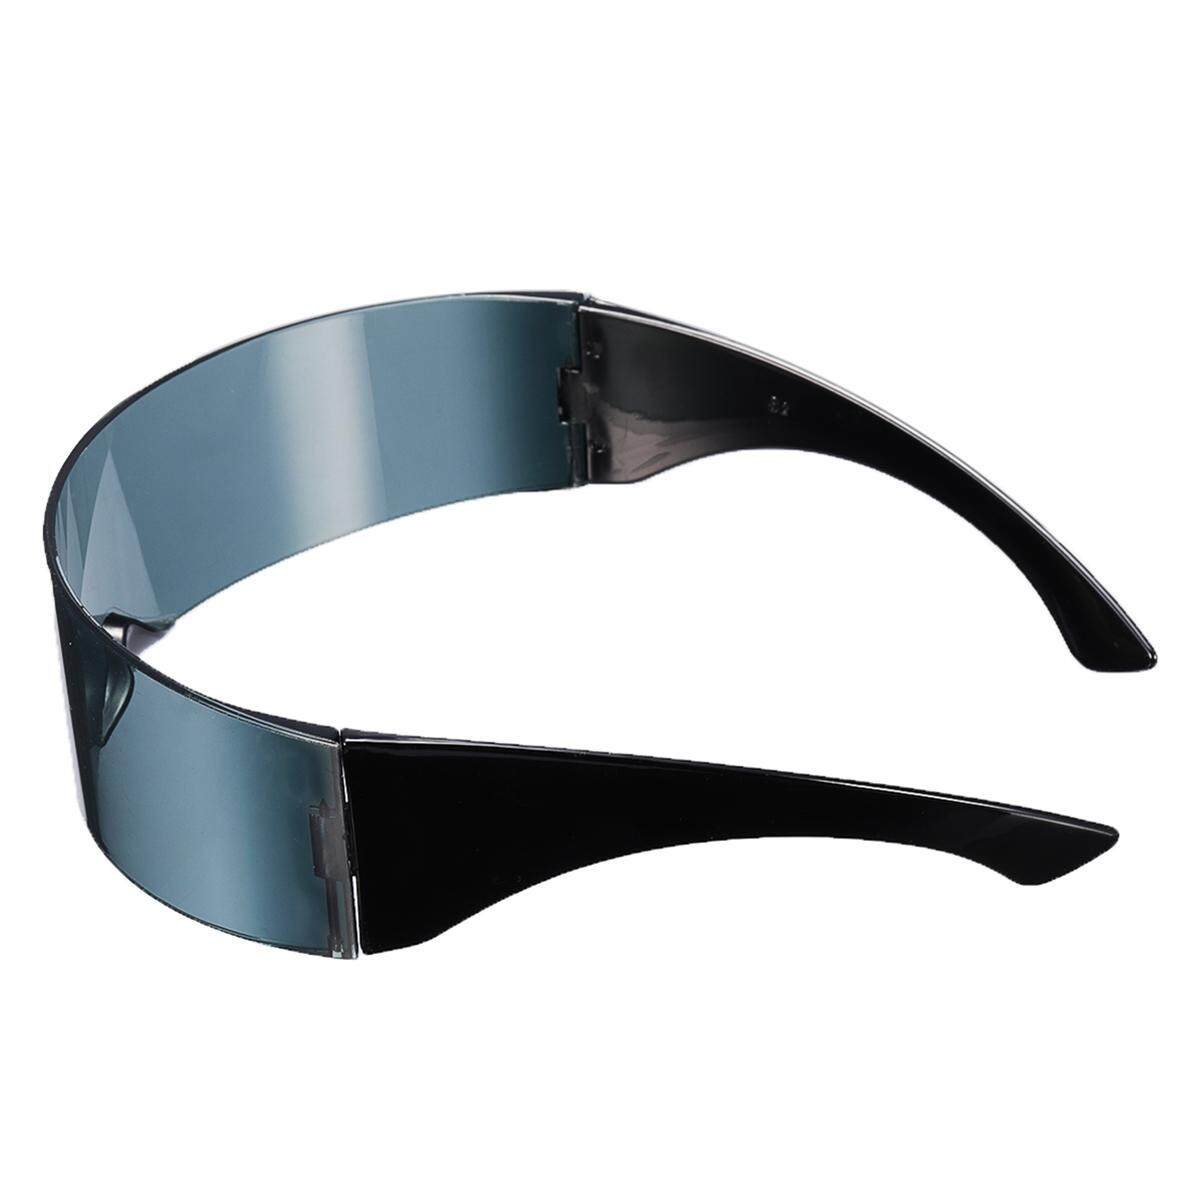 Round Futuristic Robot Party Glasses Narrow Men Colorful Mirrored Lens Visor Au By Glimmer.